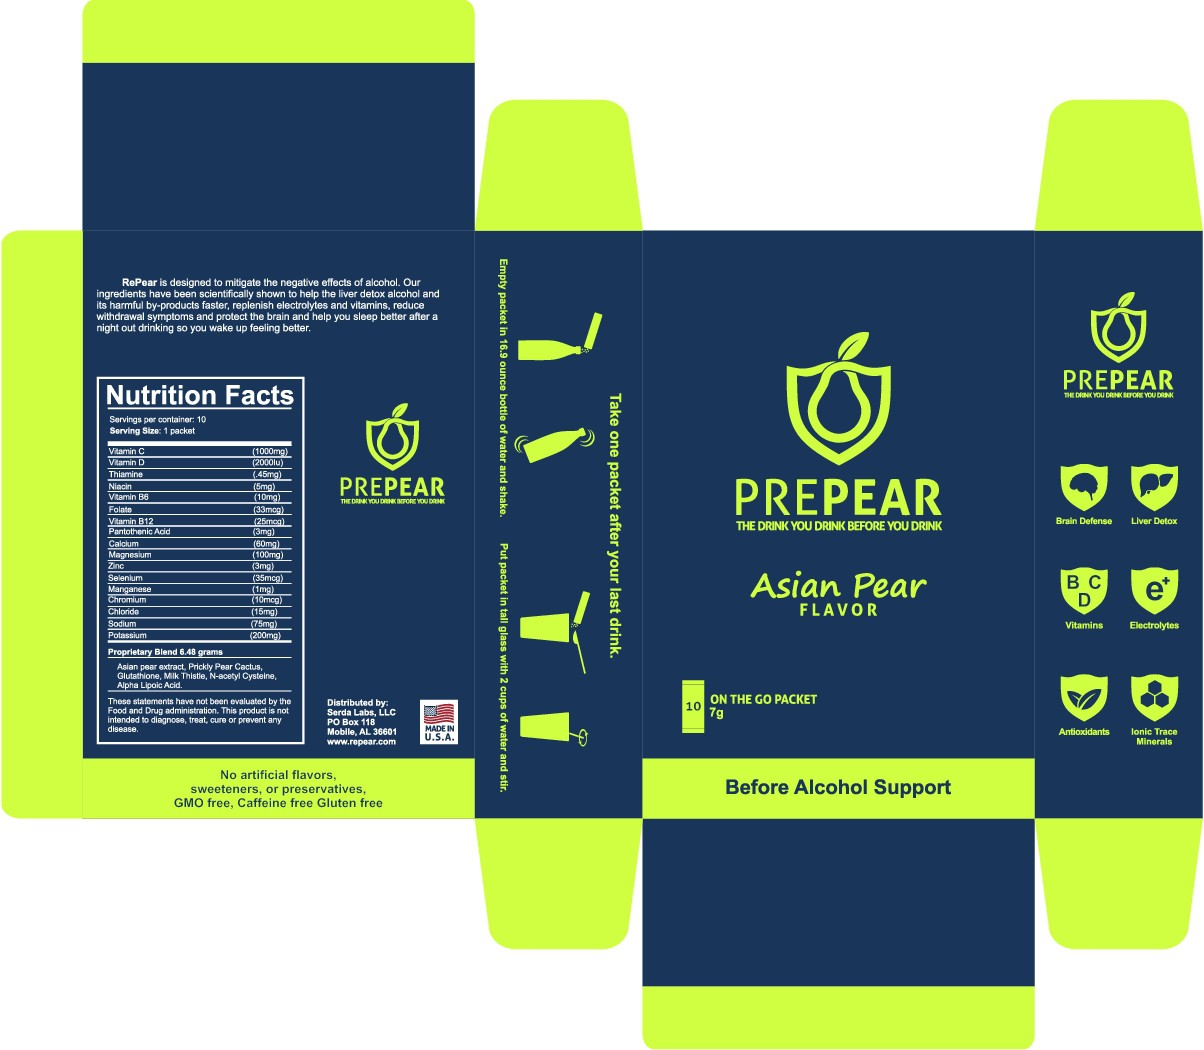 Packaging design including box and stick pack